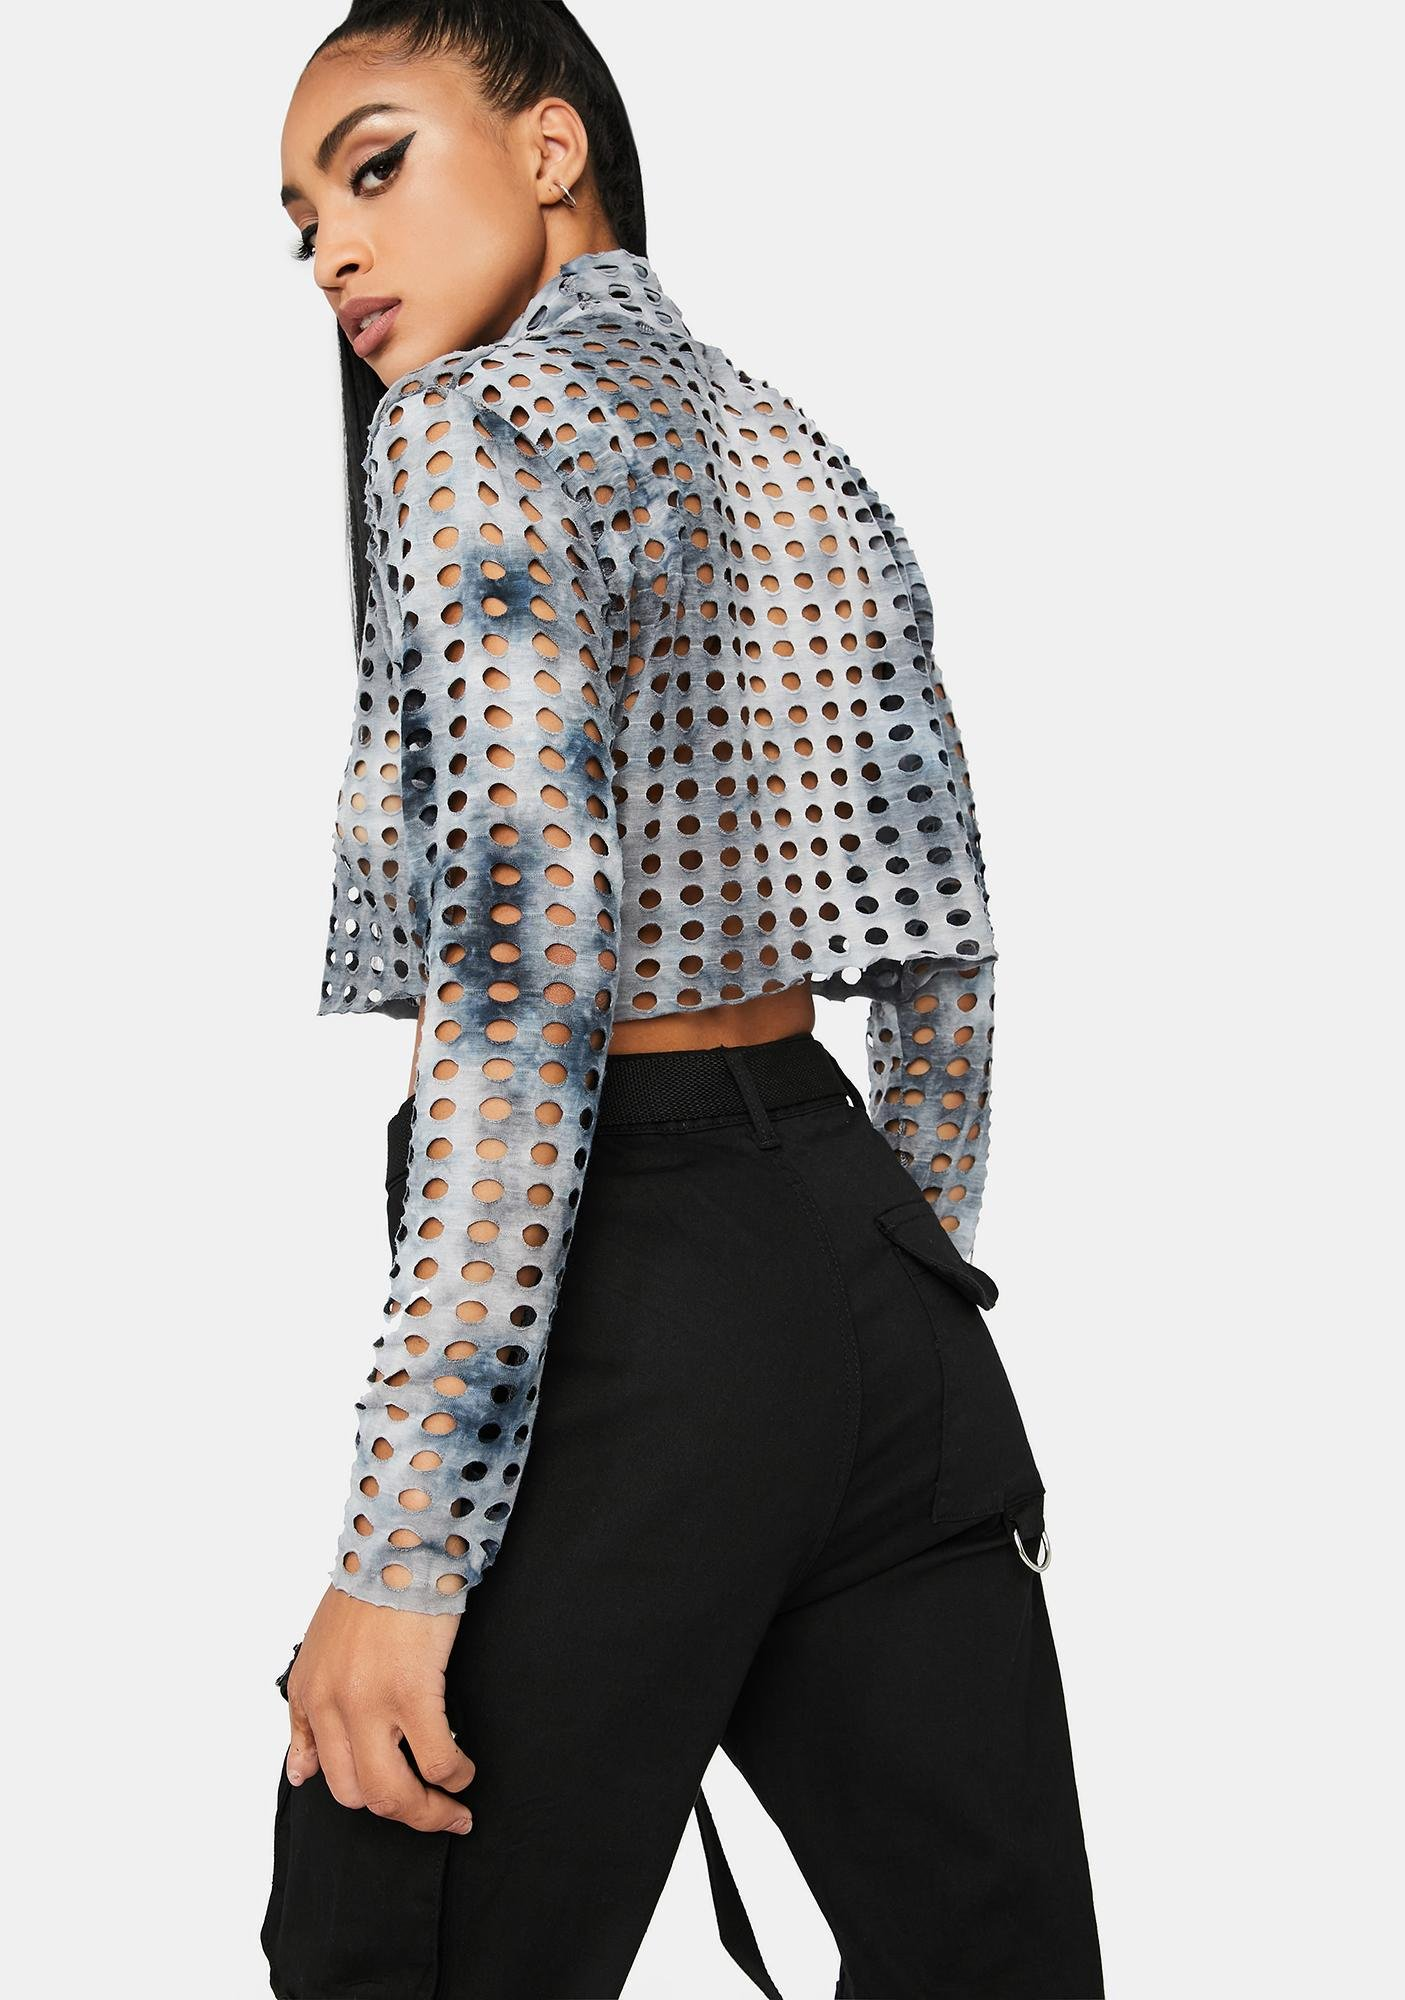 Made To Order Perforated Crop Top